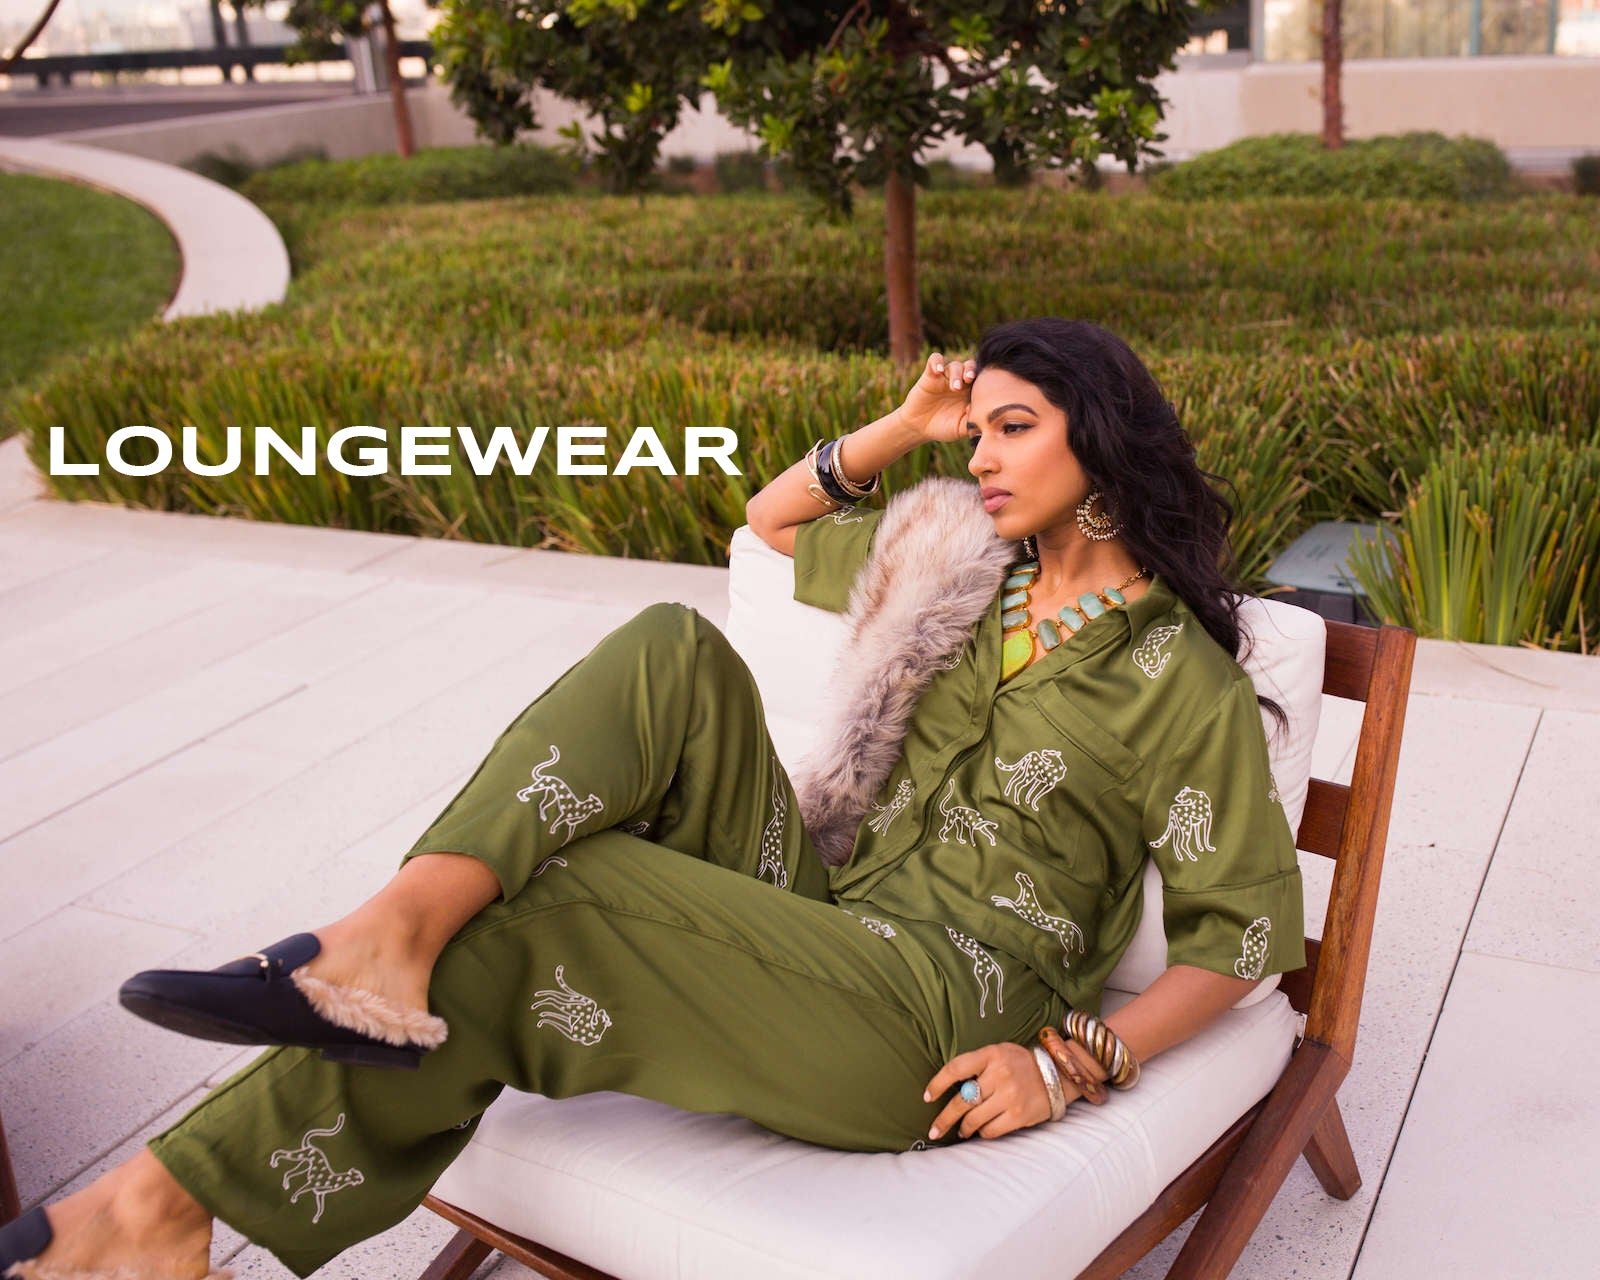 Green embroidered loungewear / pajamas